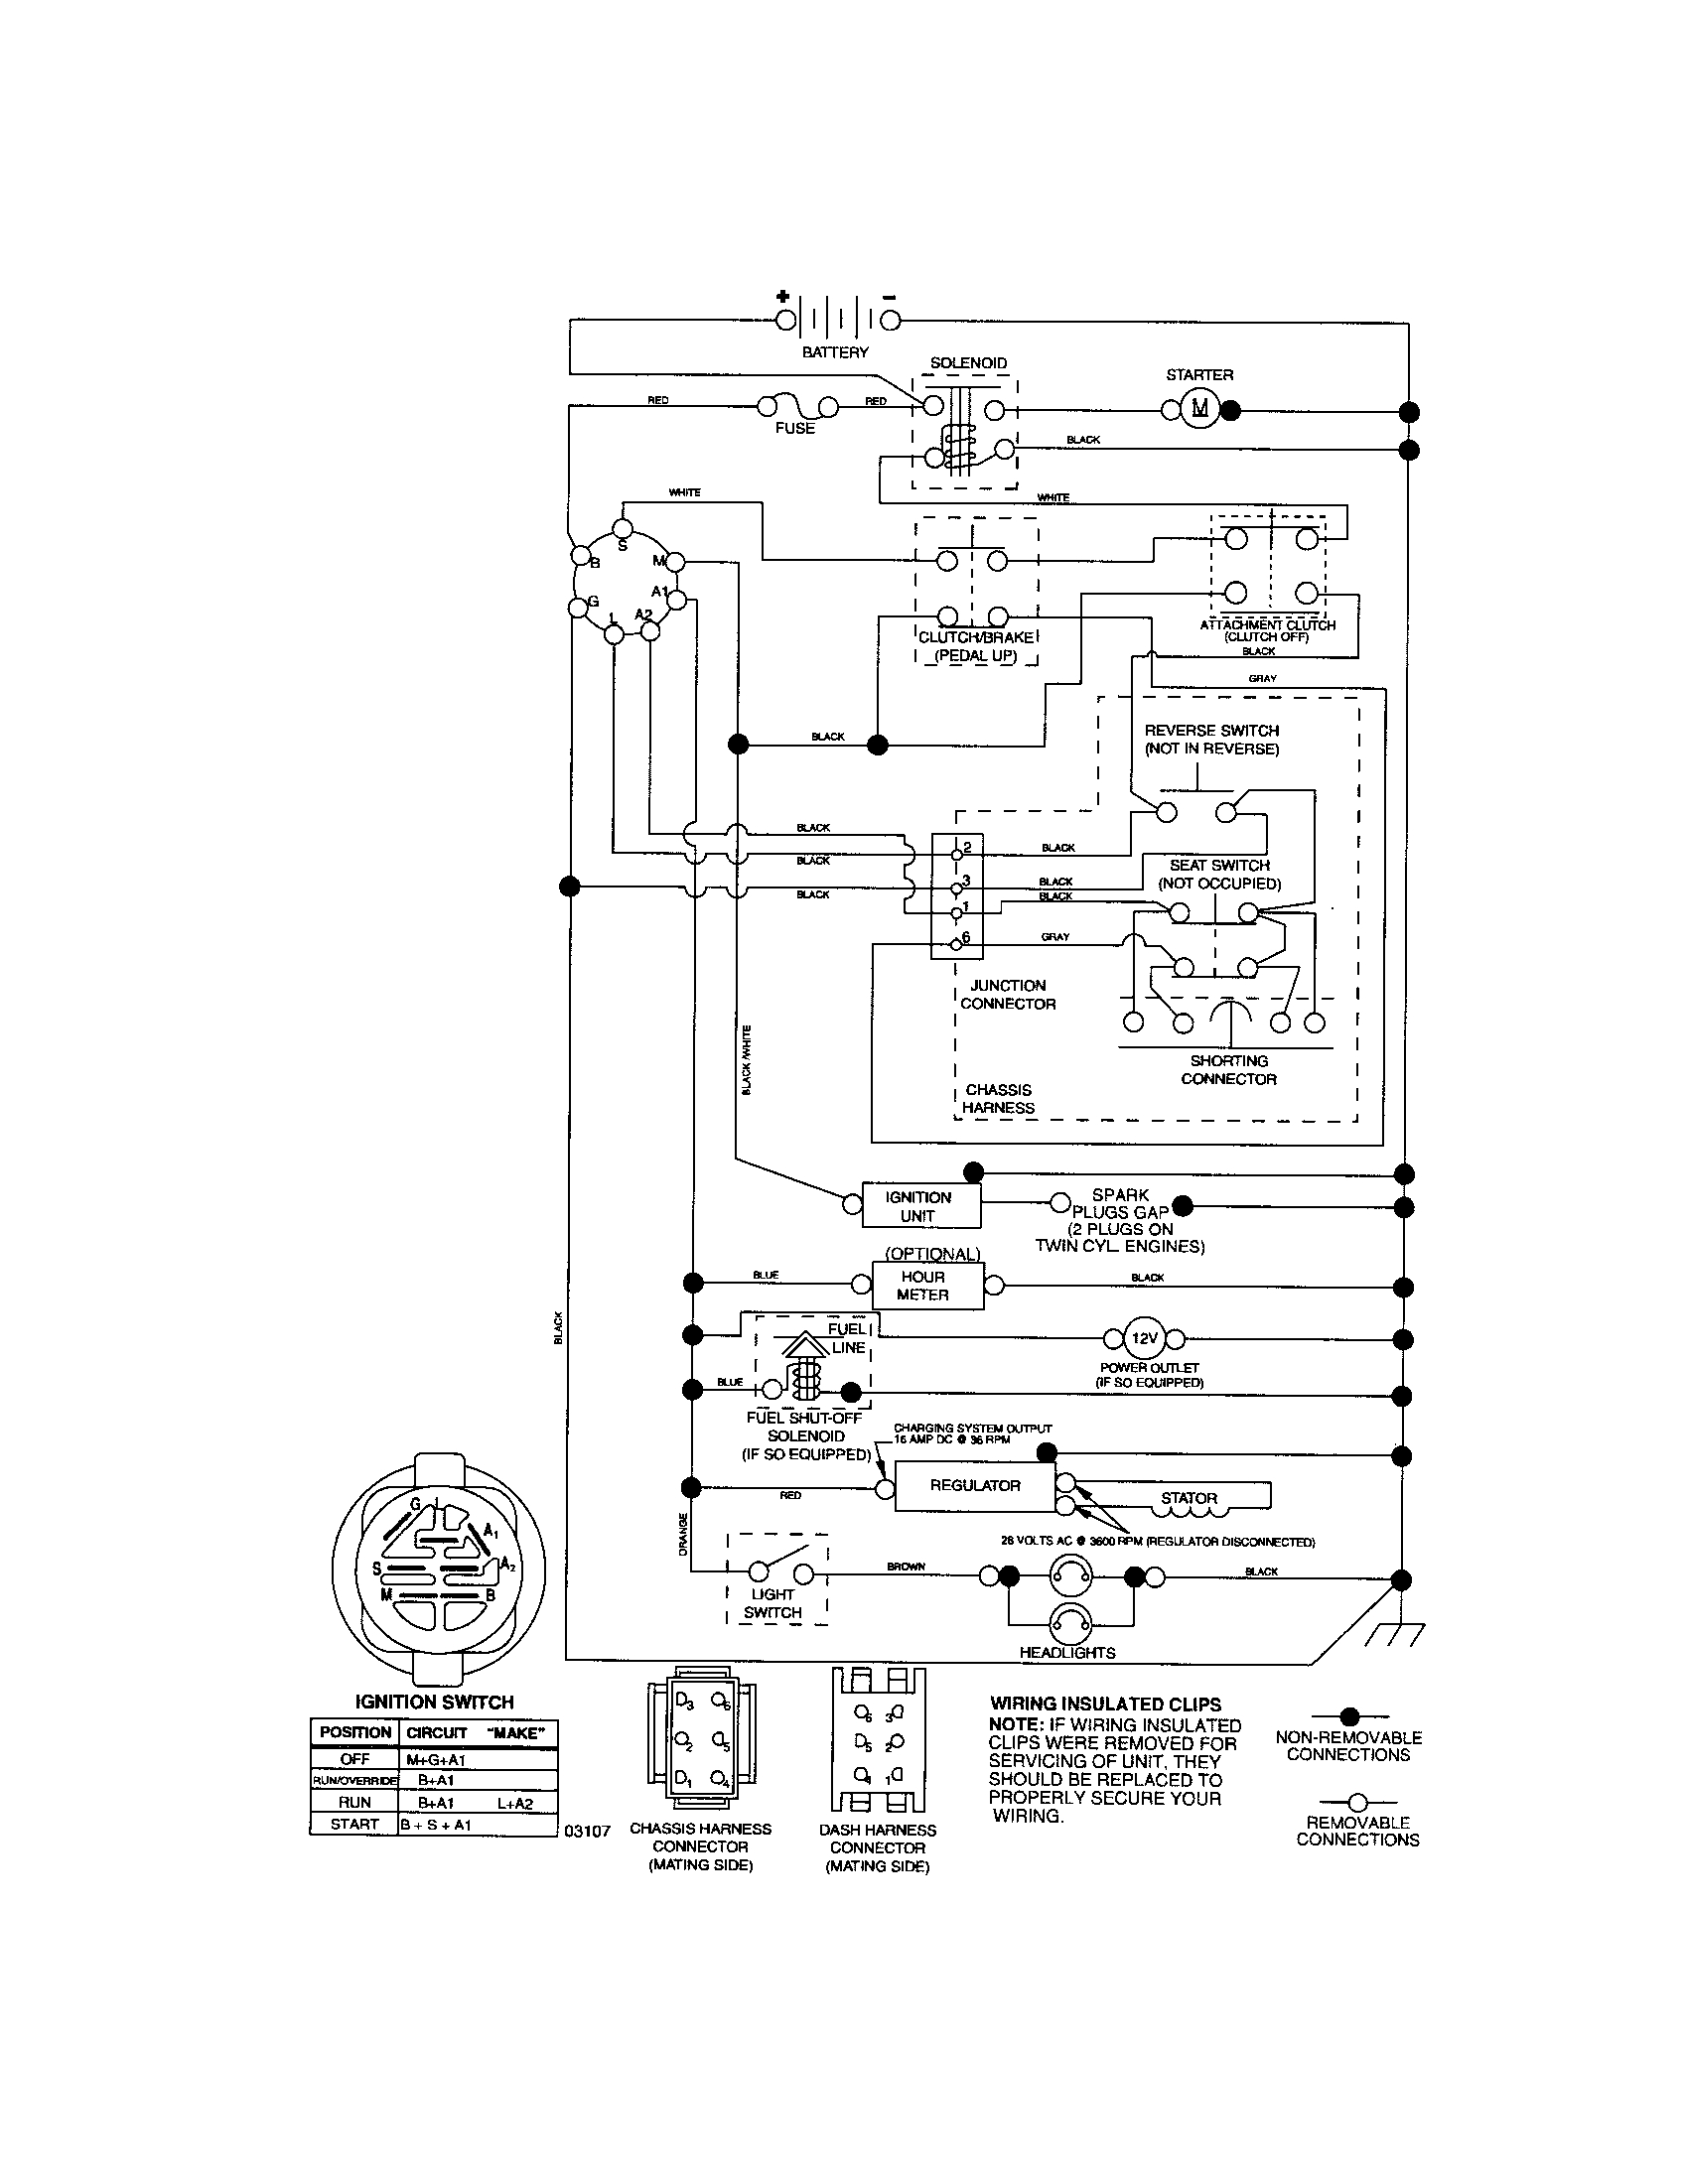 craftsman pto switch wiring diagram Download-Craftsman Riding Mower Electrical Diagram 5-l